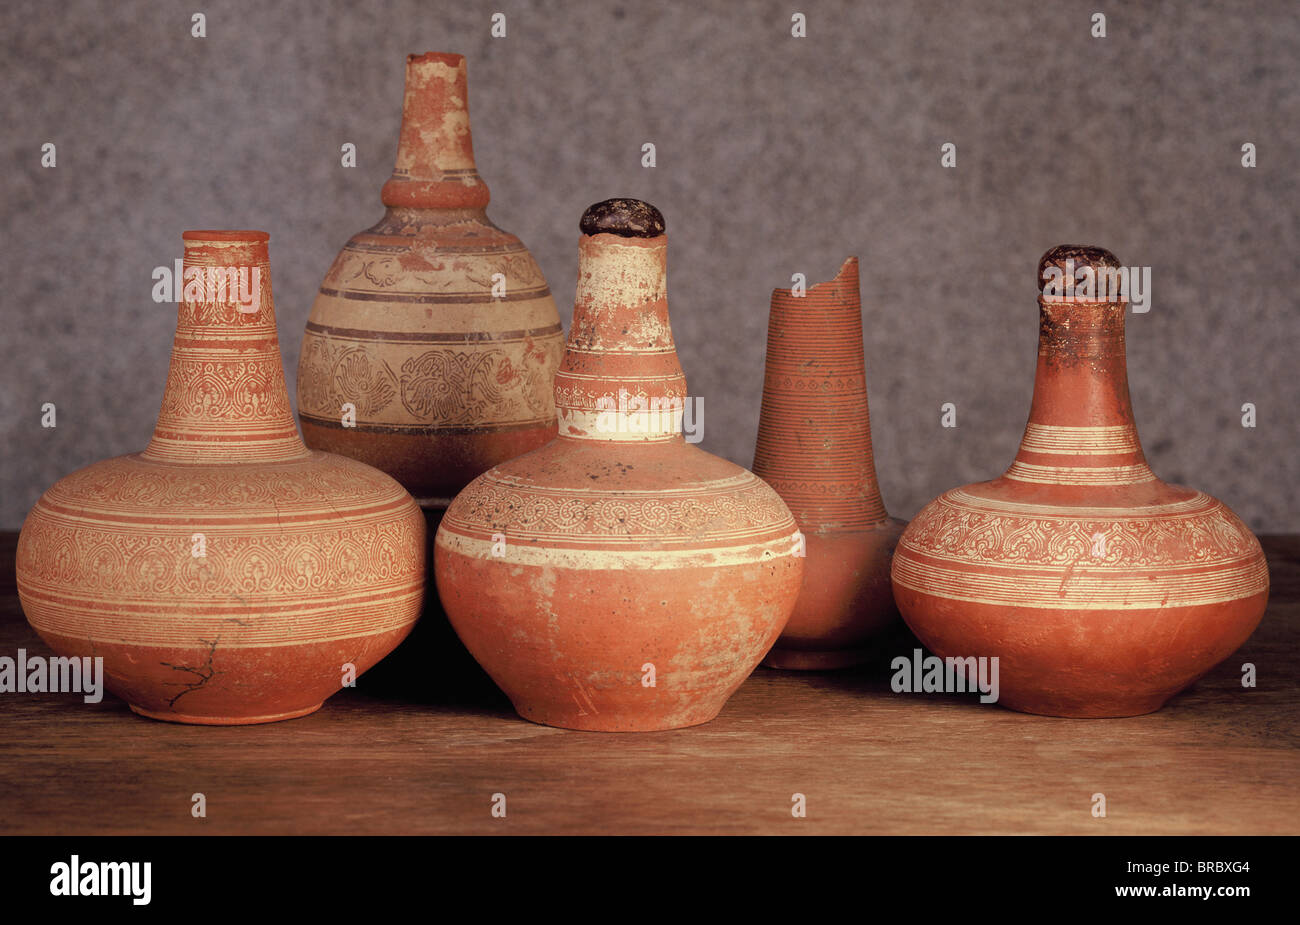 Water containers from kilns at Lamphun dating from the 14th to 16th centuries, Thailand - Stock Image